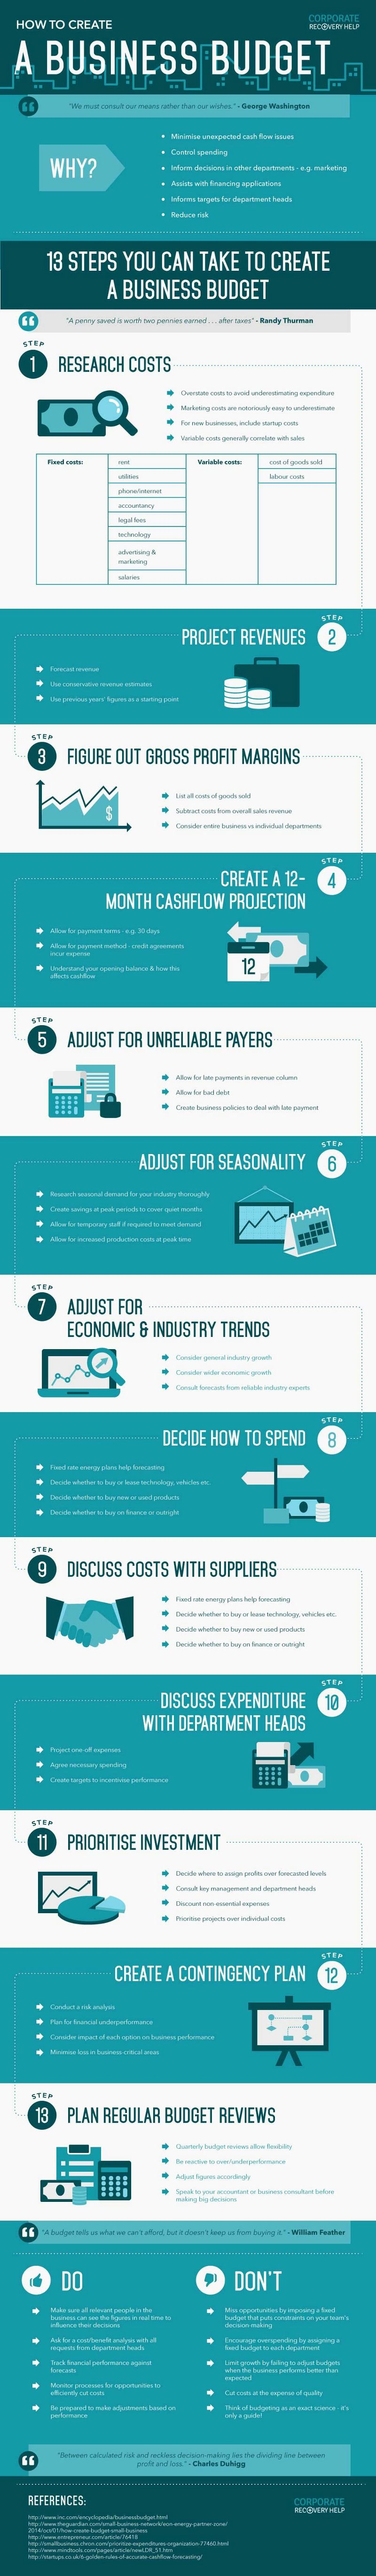 Simple Business Budget Template Luxury A Simple Small Business Bud Template